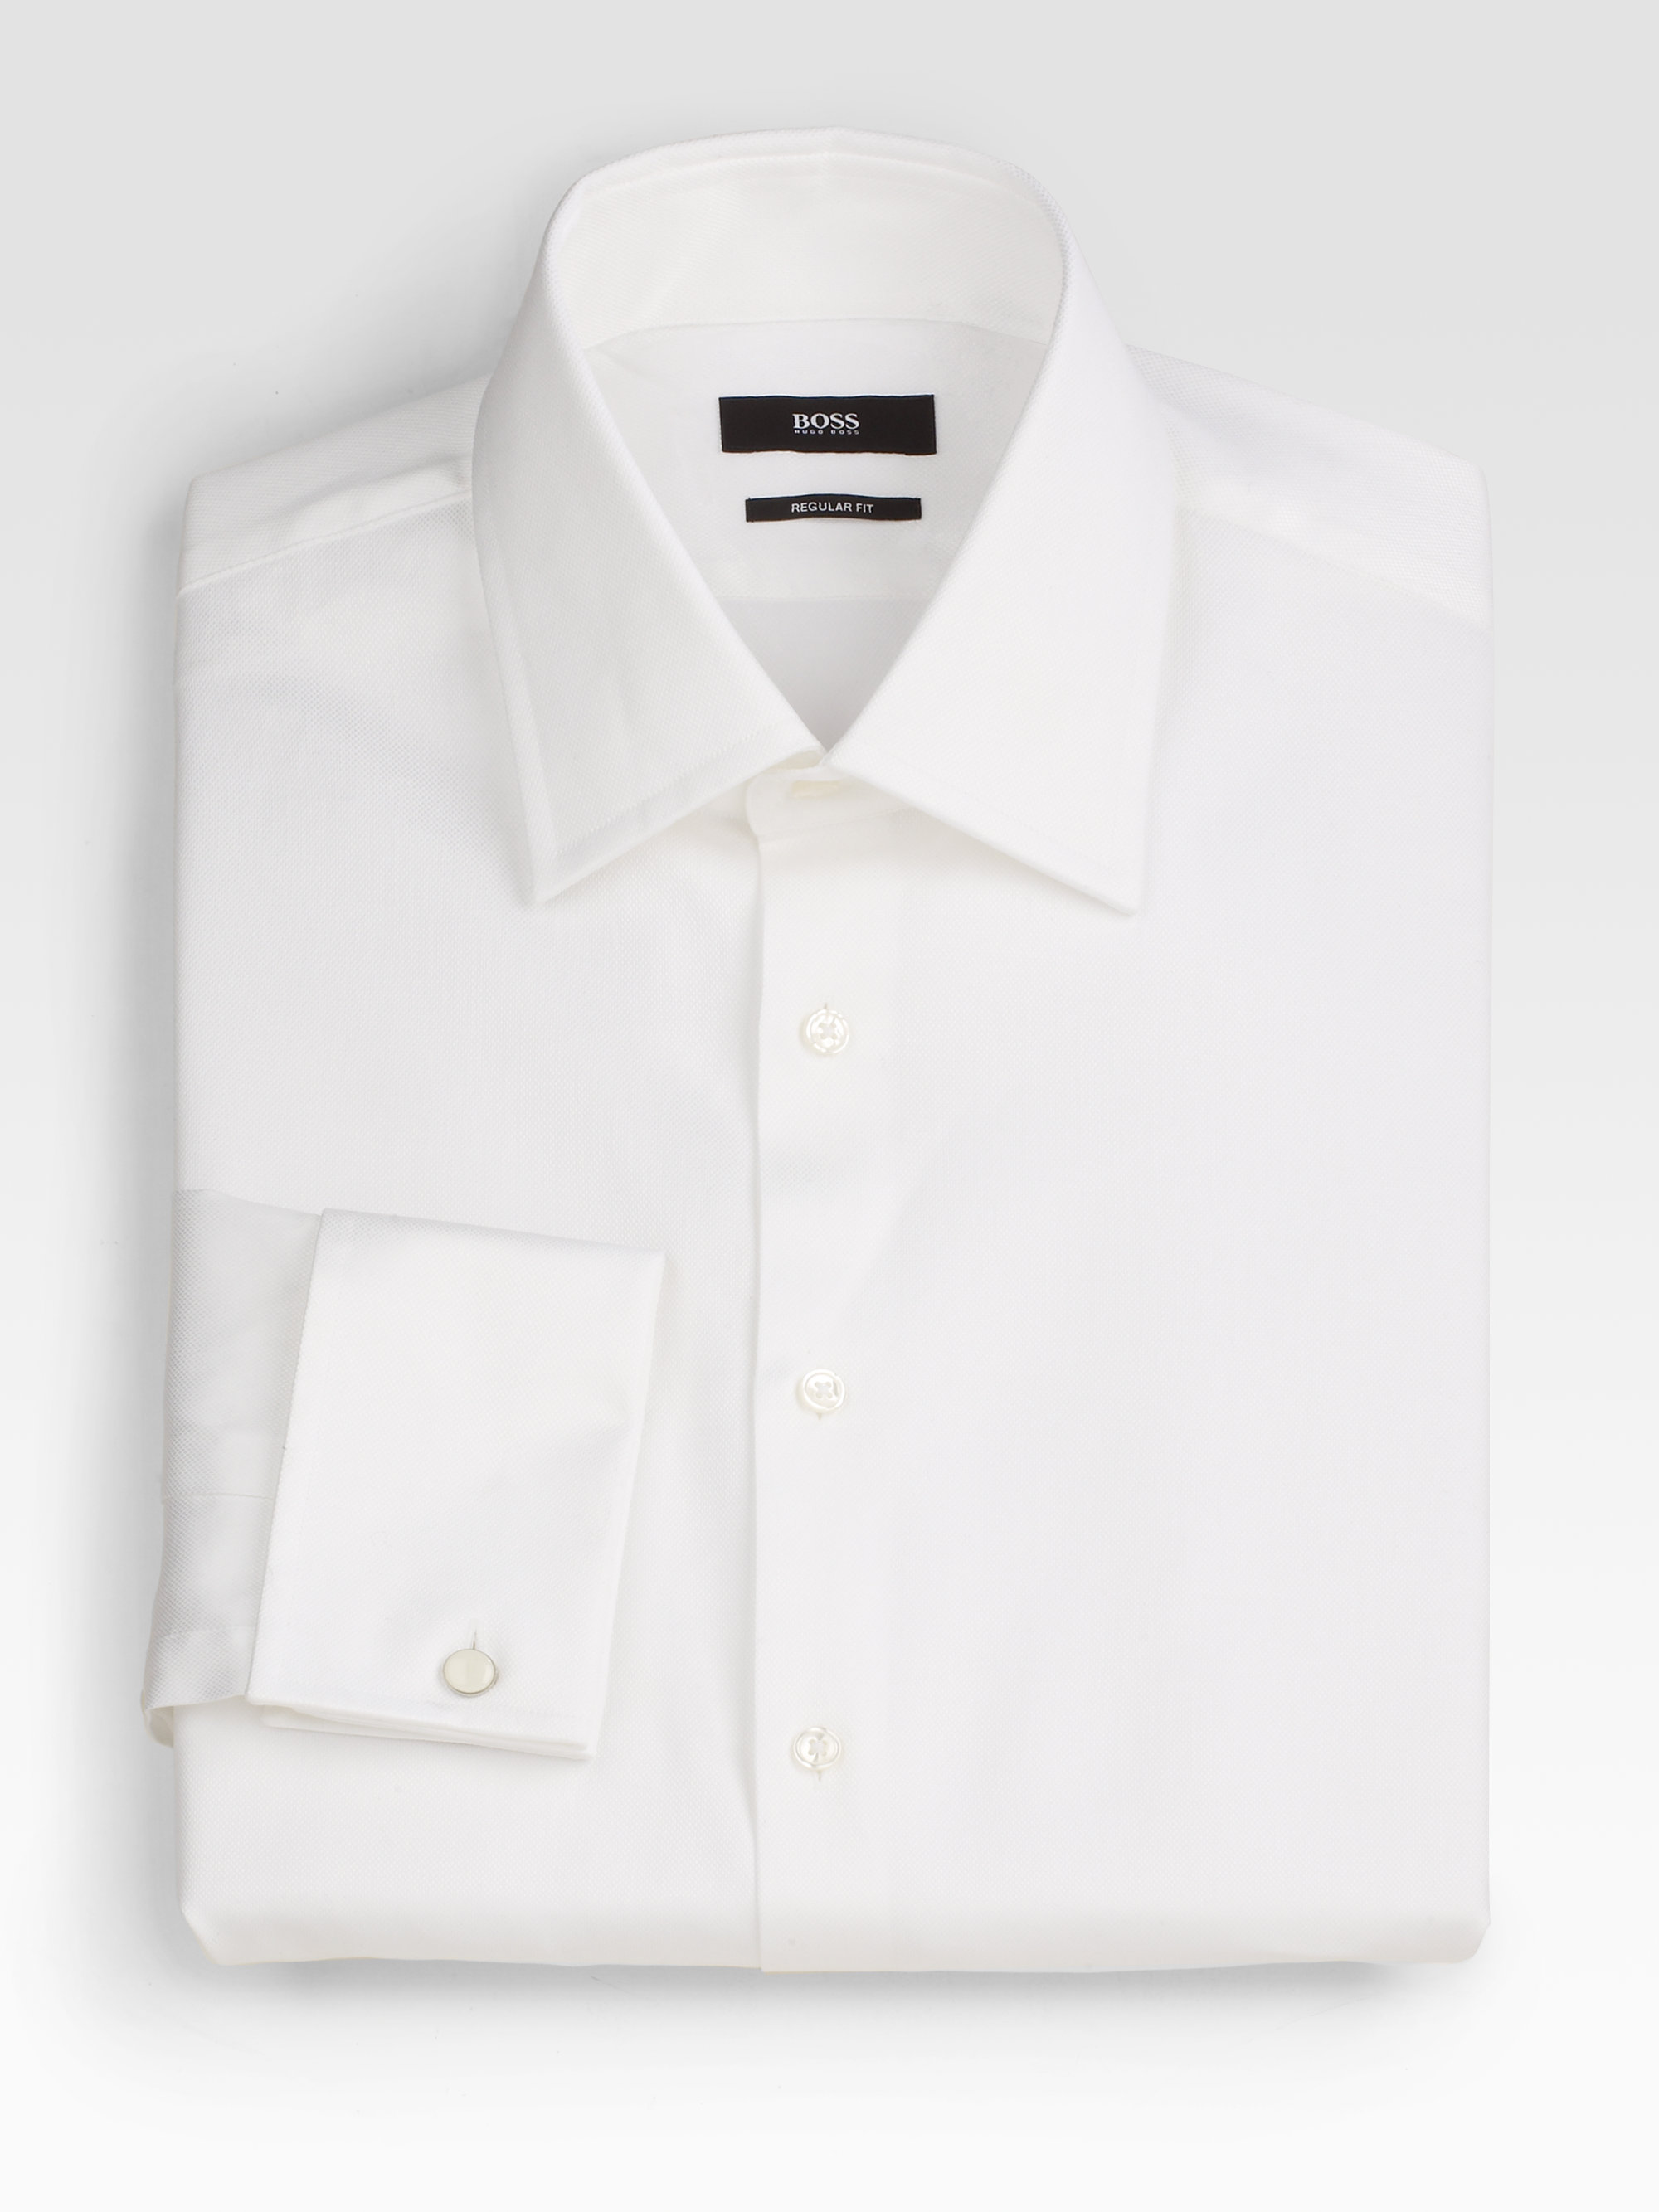 Boss Sharp Fit French Cuff Dress Shirt In White For Men Lyst